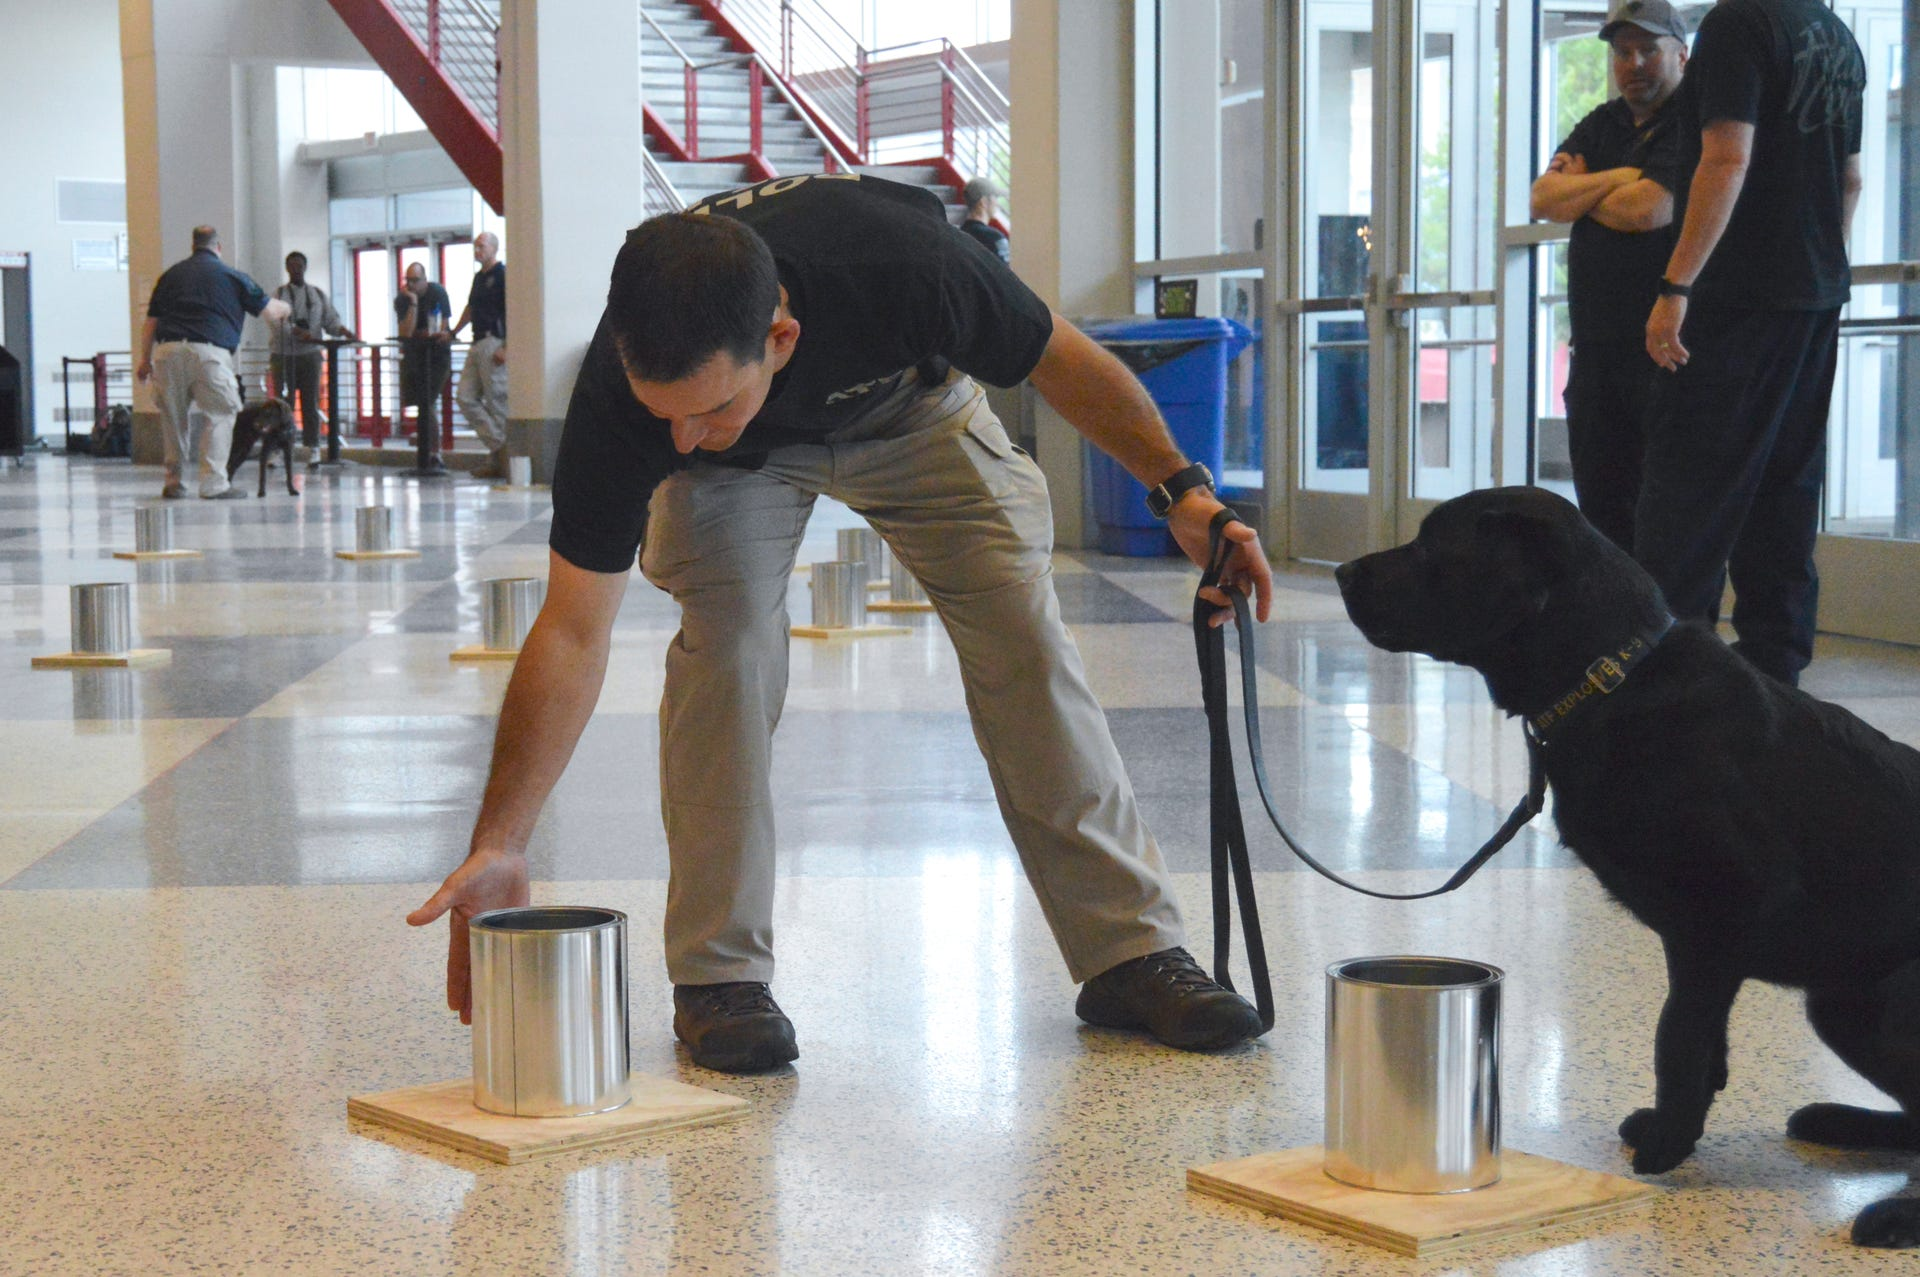 Nic Garlie from the ATF's St. Paul office starts Taylor, a 3-year-old black Labrador, on the training course for the National Odor Recognition Test at the Kohl Center. Taylor sniffed inside each canister and when she detected an explosive she would sit and signal to Garlie.